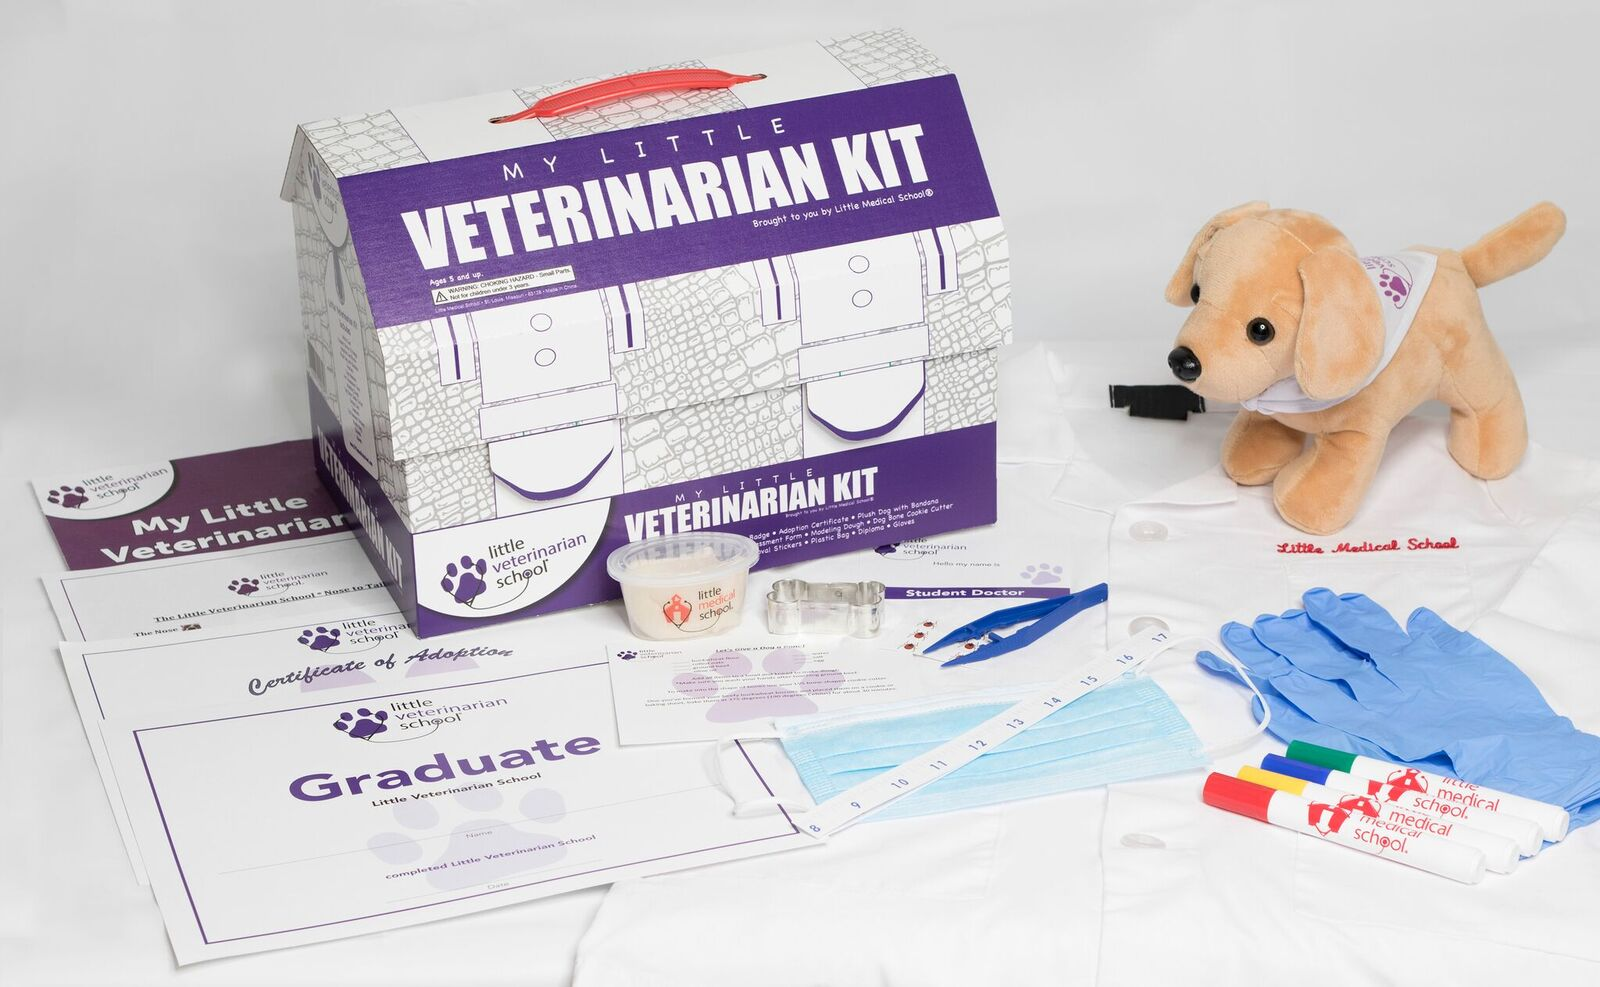 My Little Veterinarian Kit